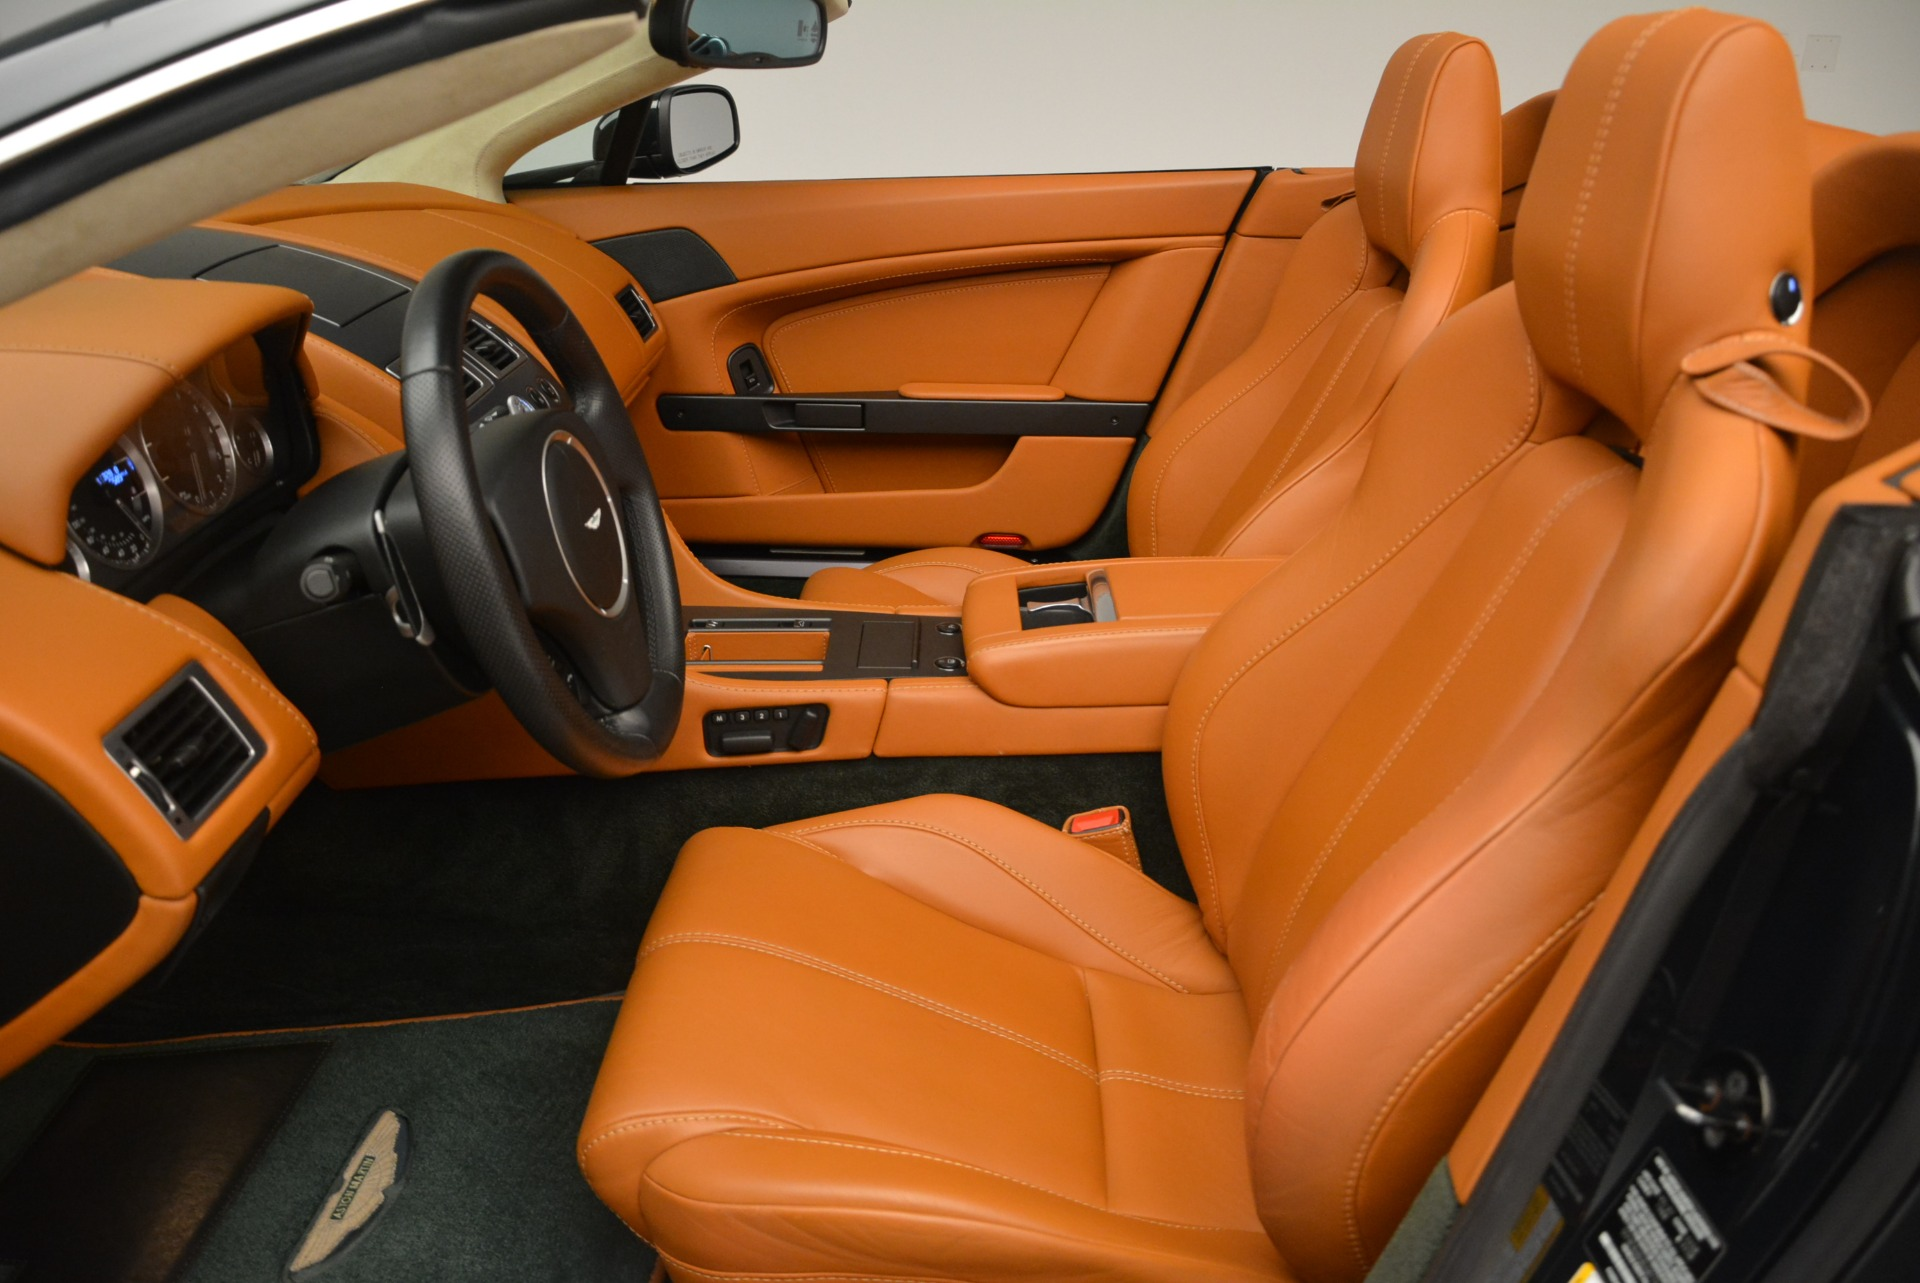 Used 2008 Aston Martin V8 Vantage Roadster For Sale In Westport, CT 2422_p16